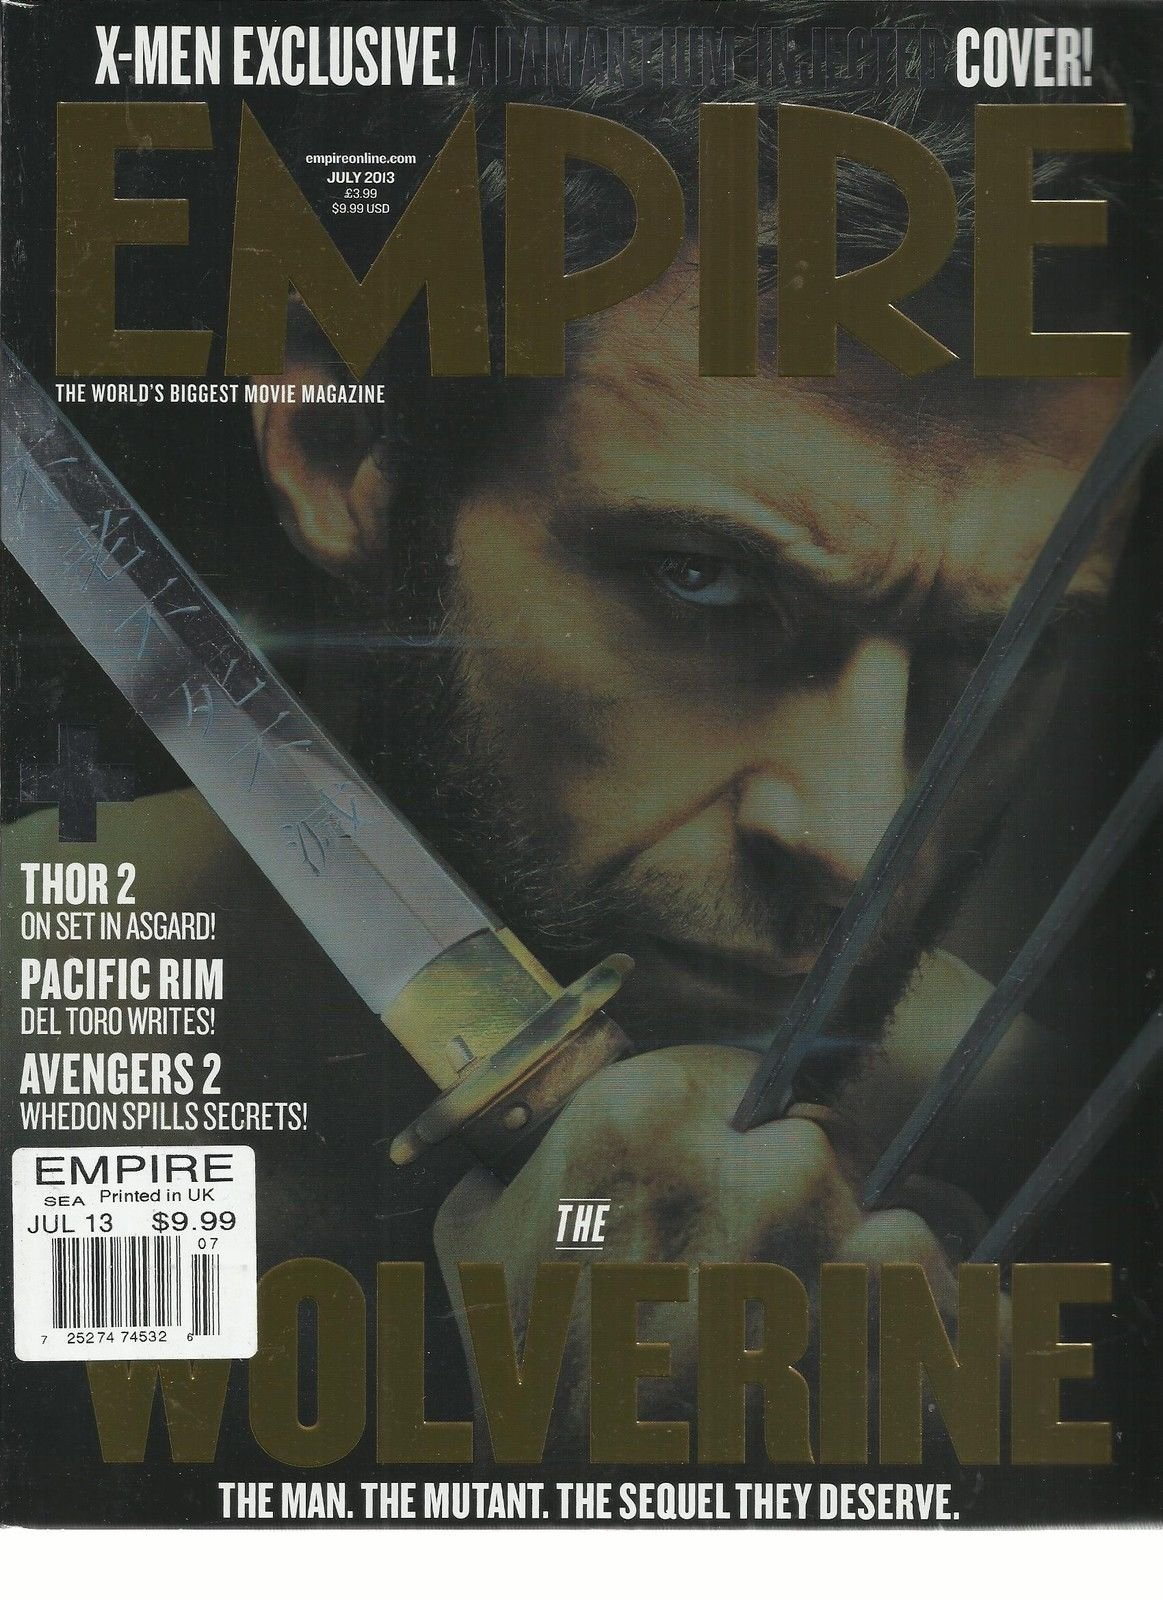 EMPIRE, JULY, 2013 (THE WORLD'S BIGGEST MOVIE MAGAZINE * THE WOLVERINE)